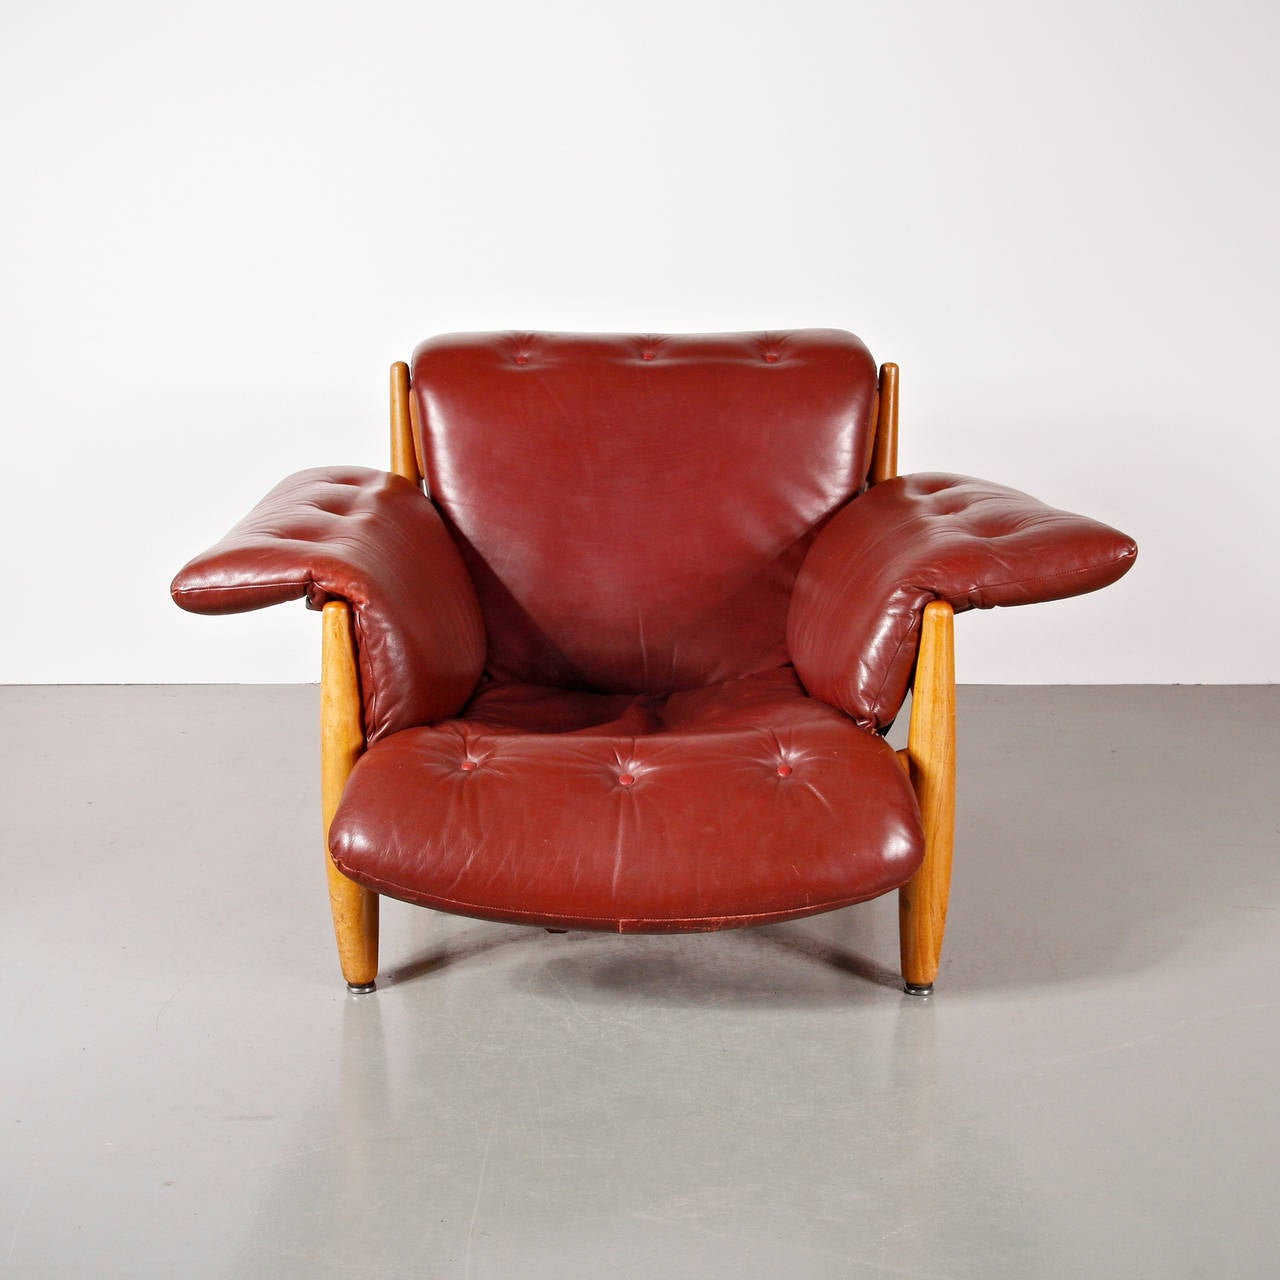 Sheriff Chair By Sergio Rodrigues For ISA, Brazil, Circa 1960 3